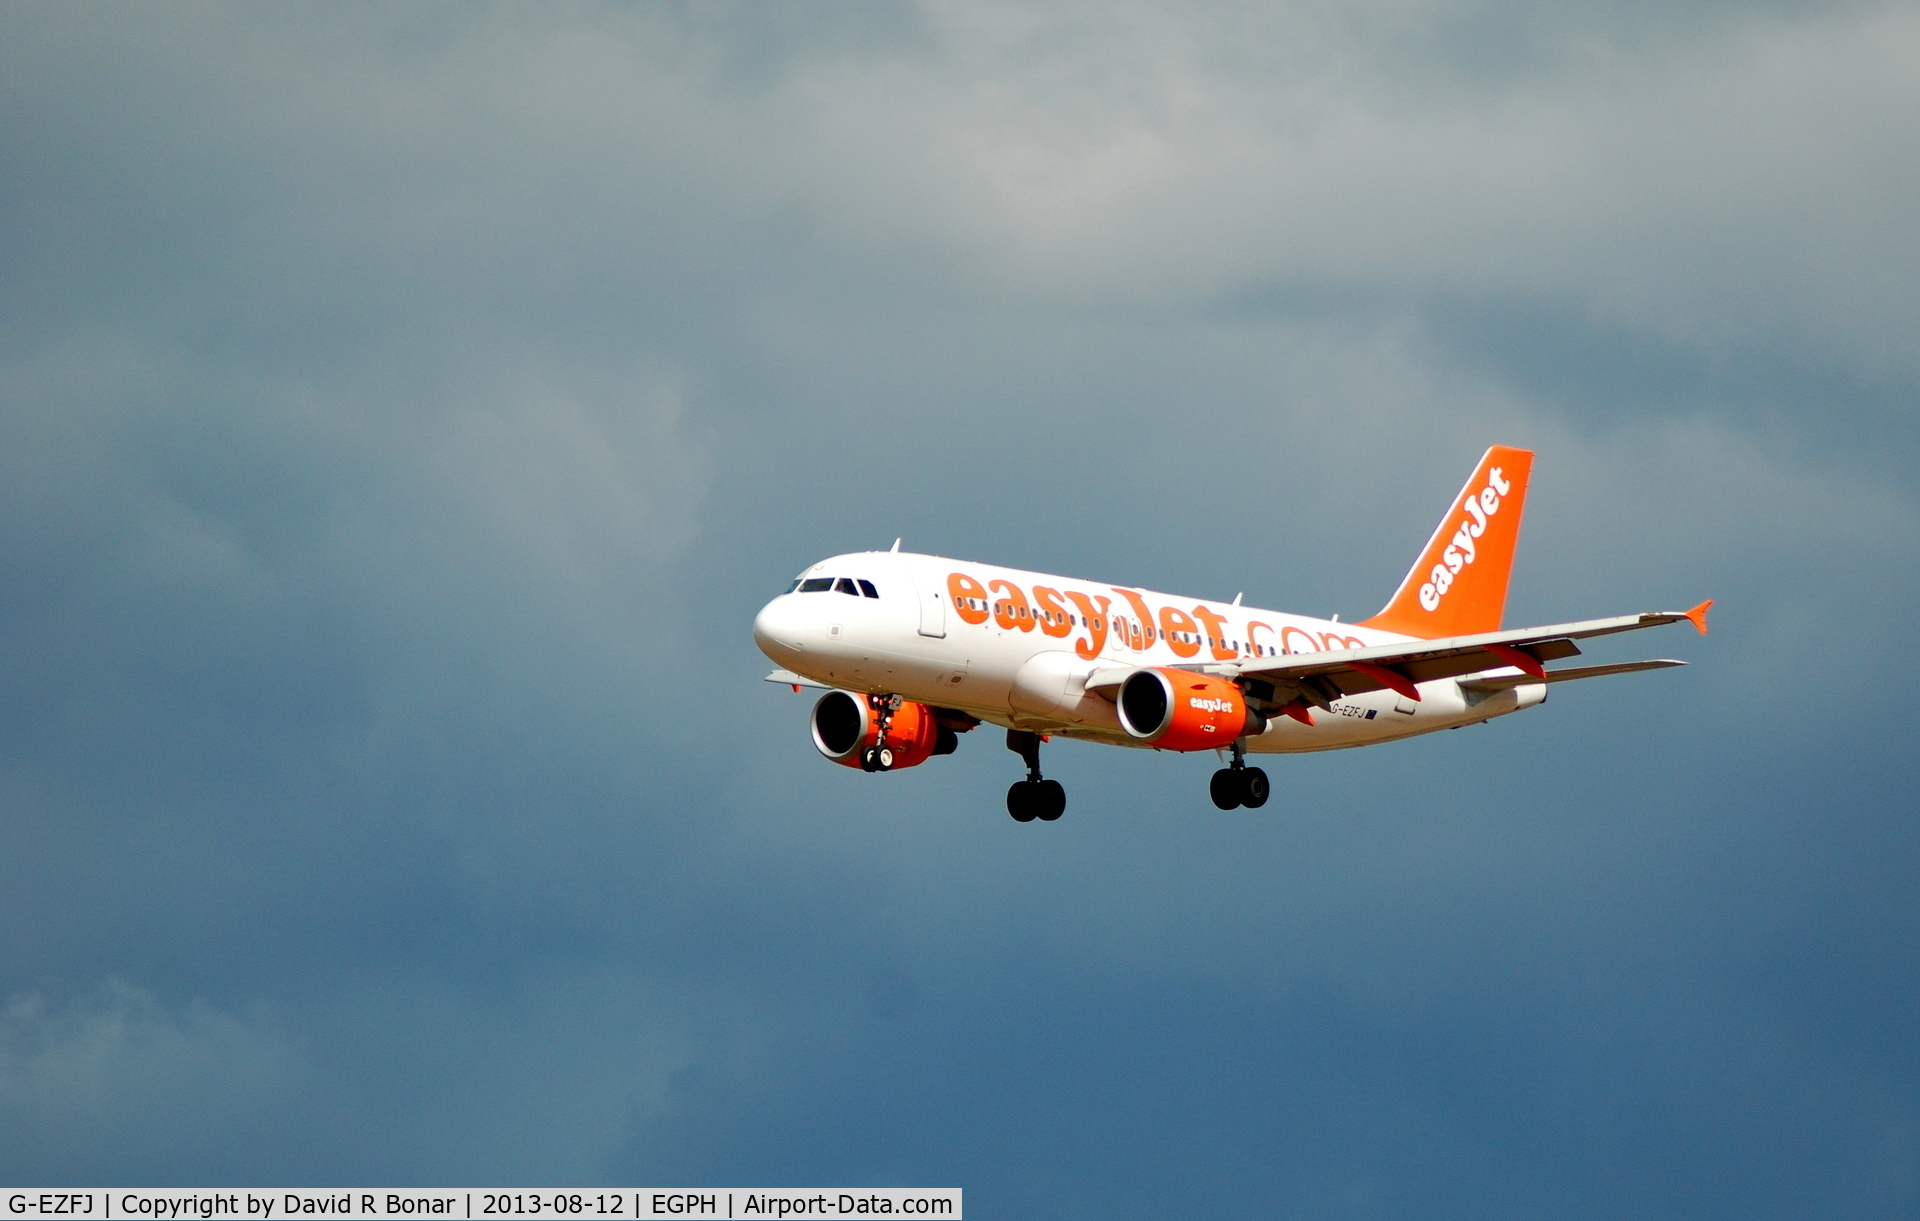 G-EZFJ, 2009 Airbus A319-111 C/N 4040, Short finals in-front of an agry sky